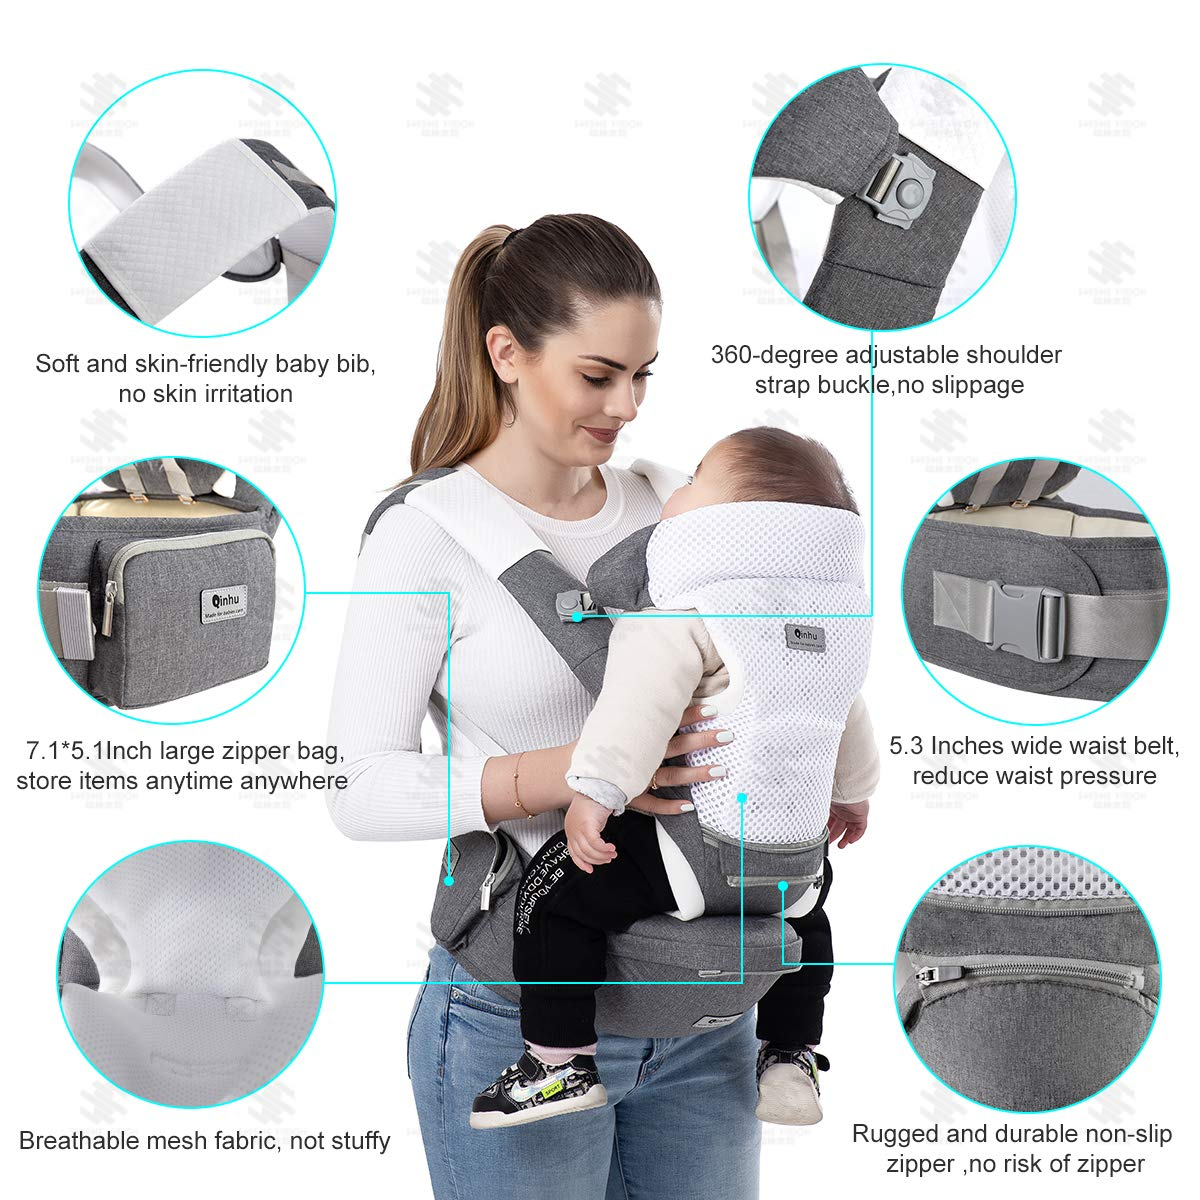 QINHU Baby Carrier, Multifunction Baby Carrier Hip Seat for 3-36 Month Baby, 6-in-1 Ways to Carry, Adjustable Size,All Seasons, Perfect for Hiking Shopping Travelling Gray